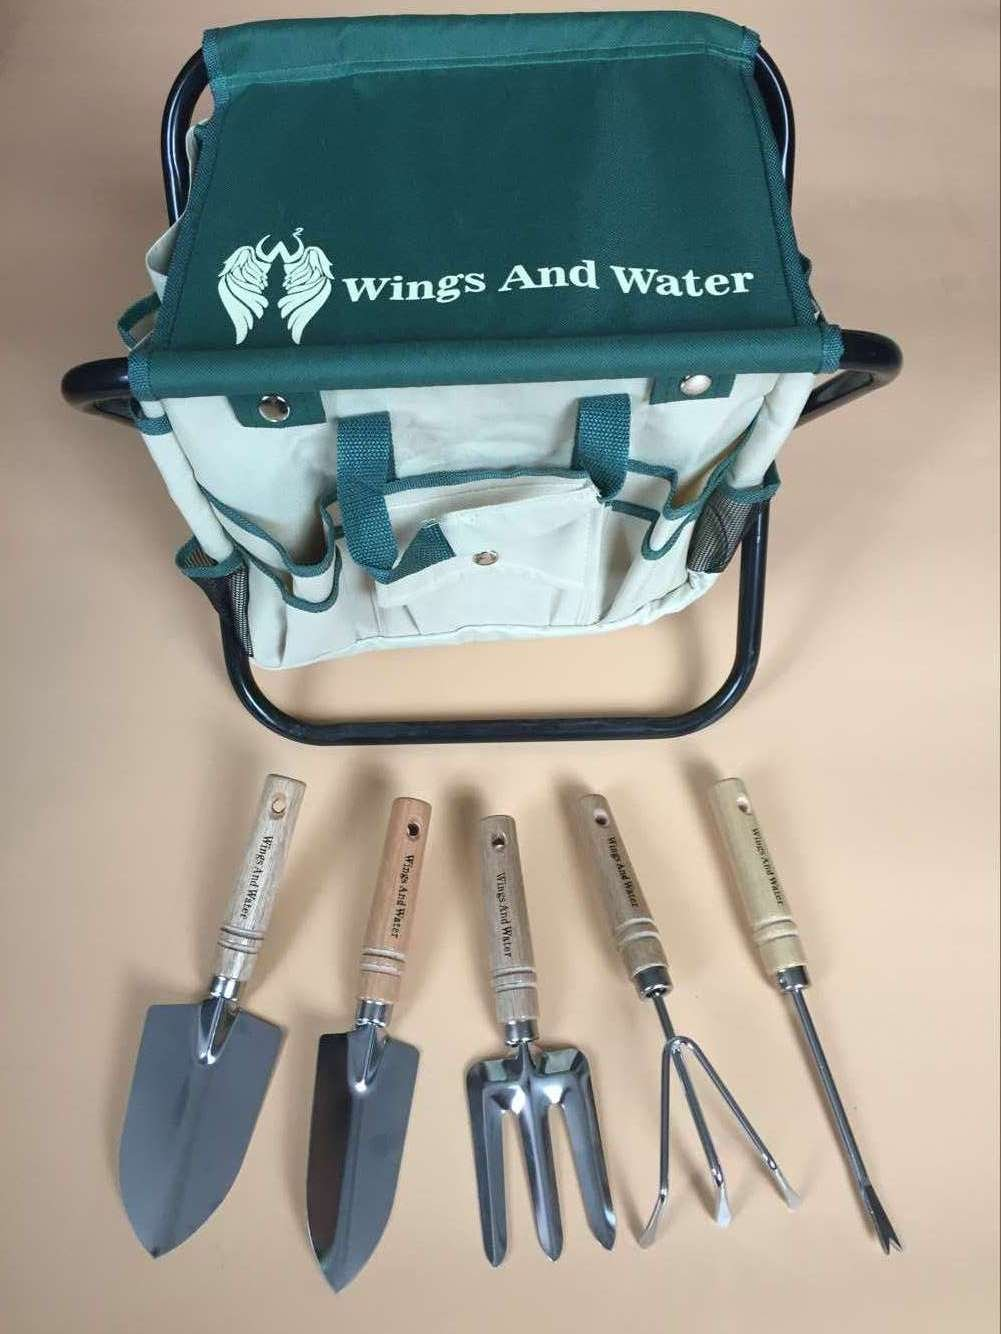 Wings and Water 7 Piece Garden Tool Set, All-In-One Tool Bag, Durable Folding Stool, Stainless Steel by Wings and Water (Image #9)